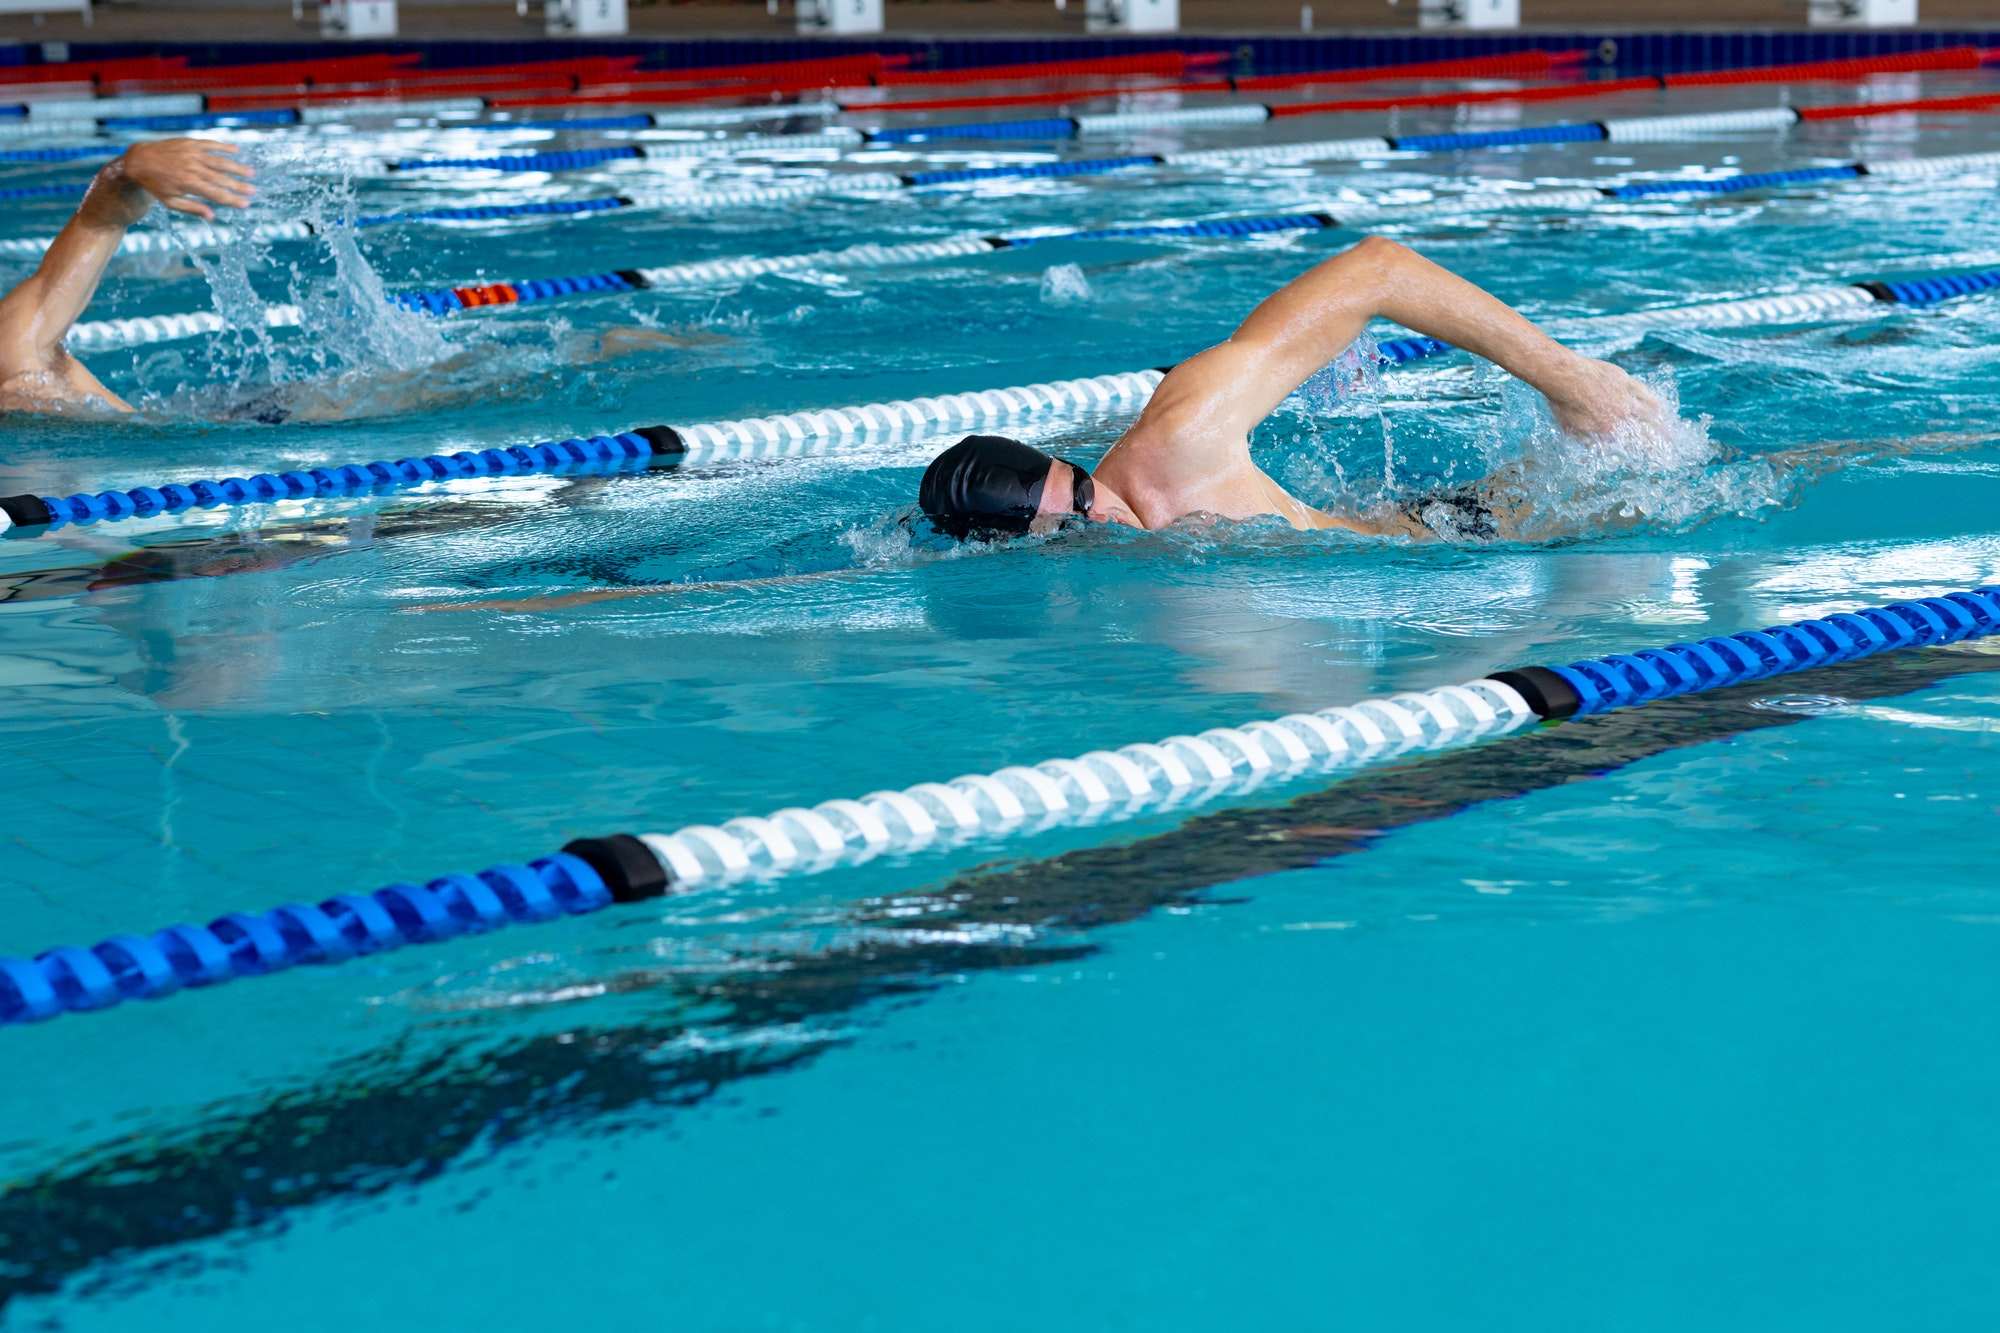 Swimmers swimming in the pool